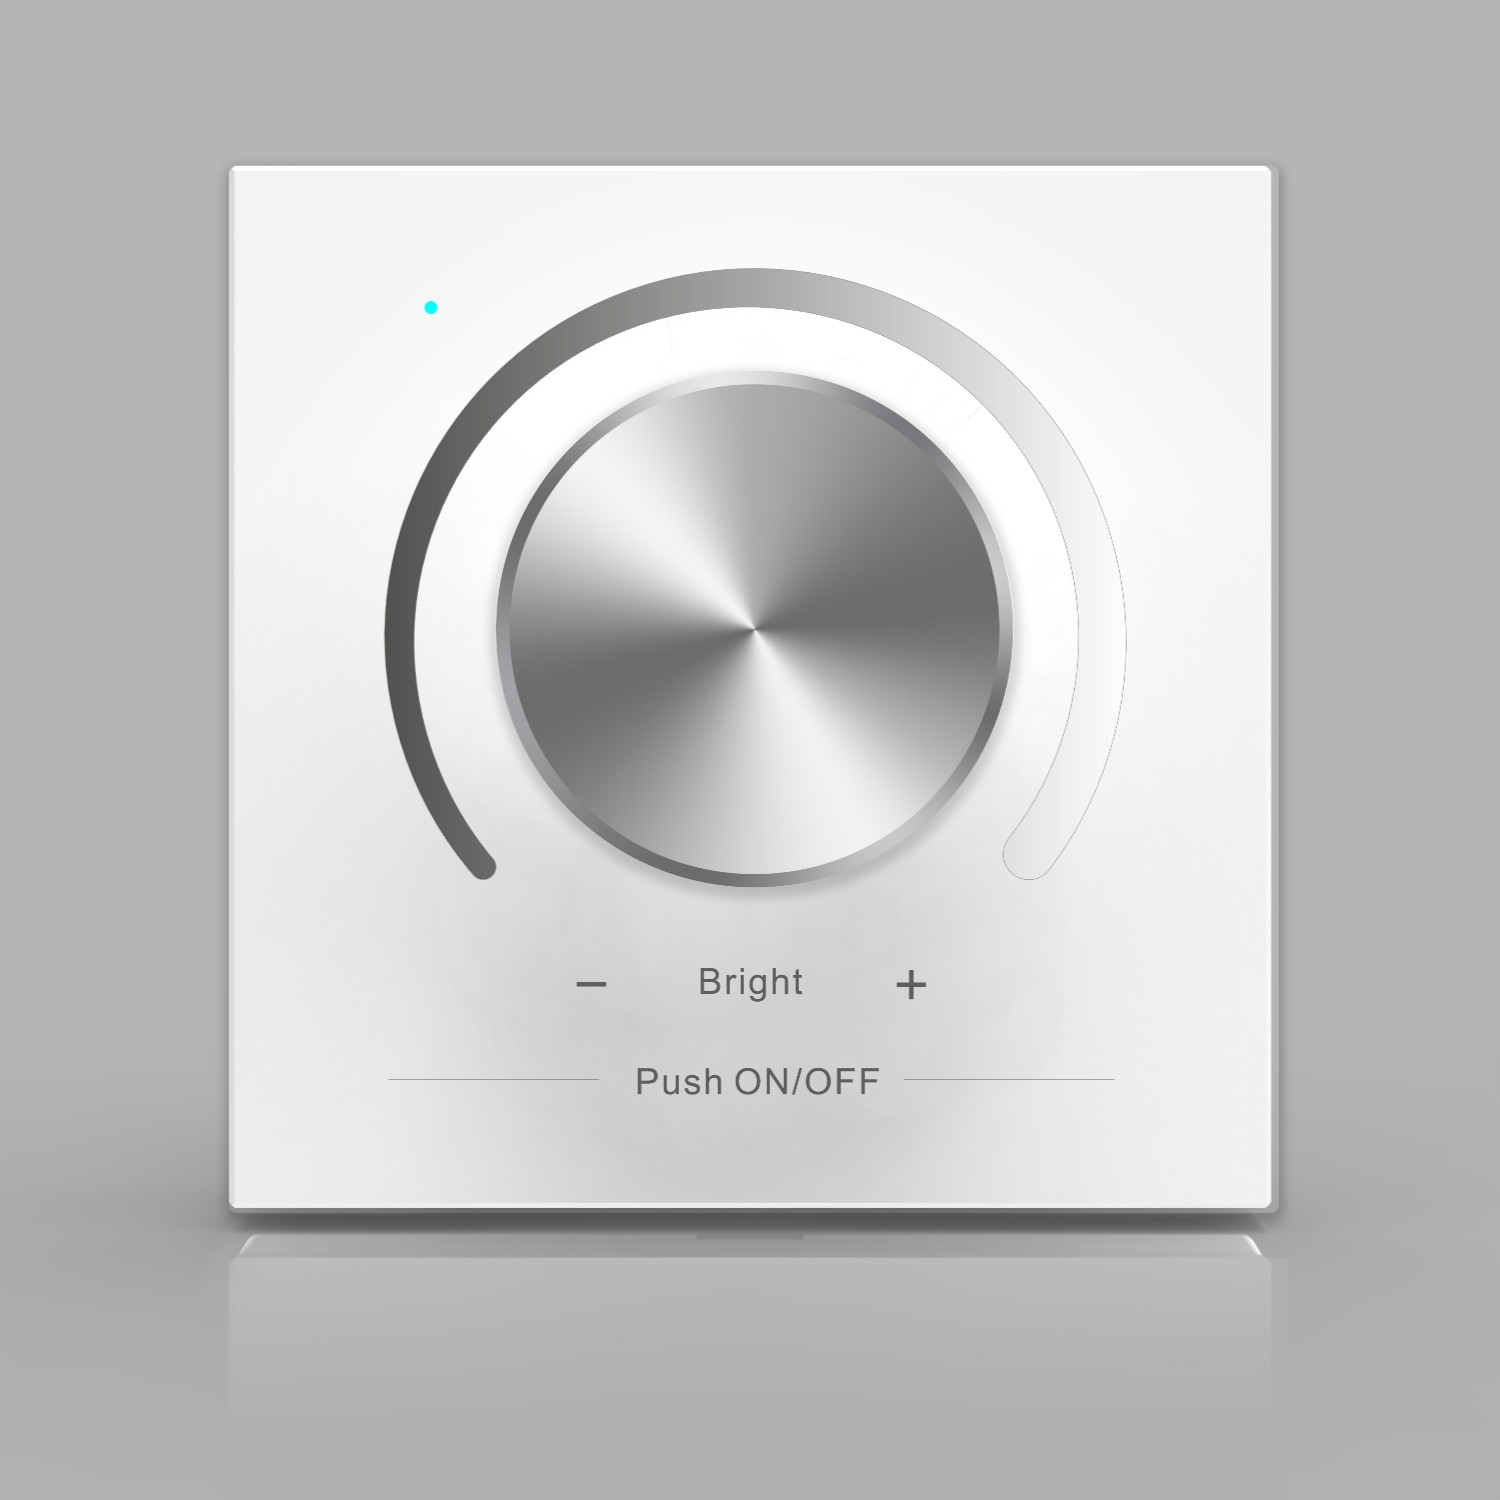 Led Dimmer Knob Panel Led Controller Control The